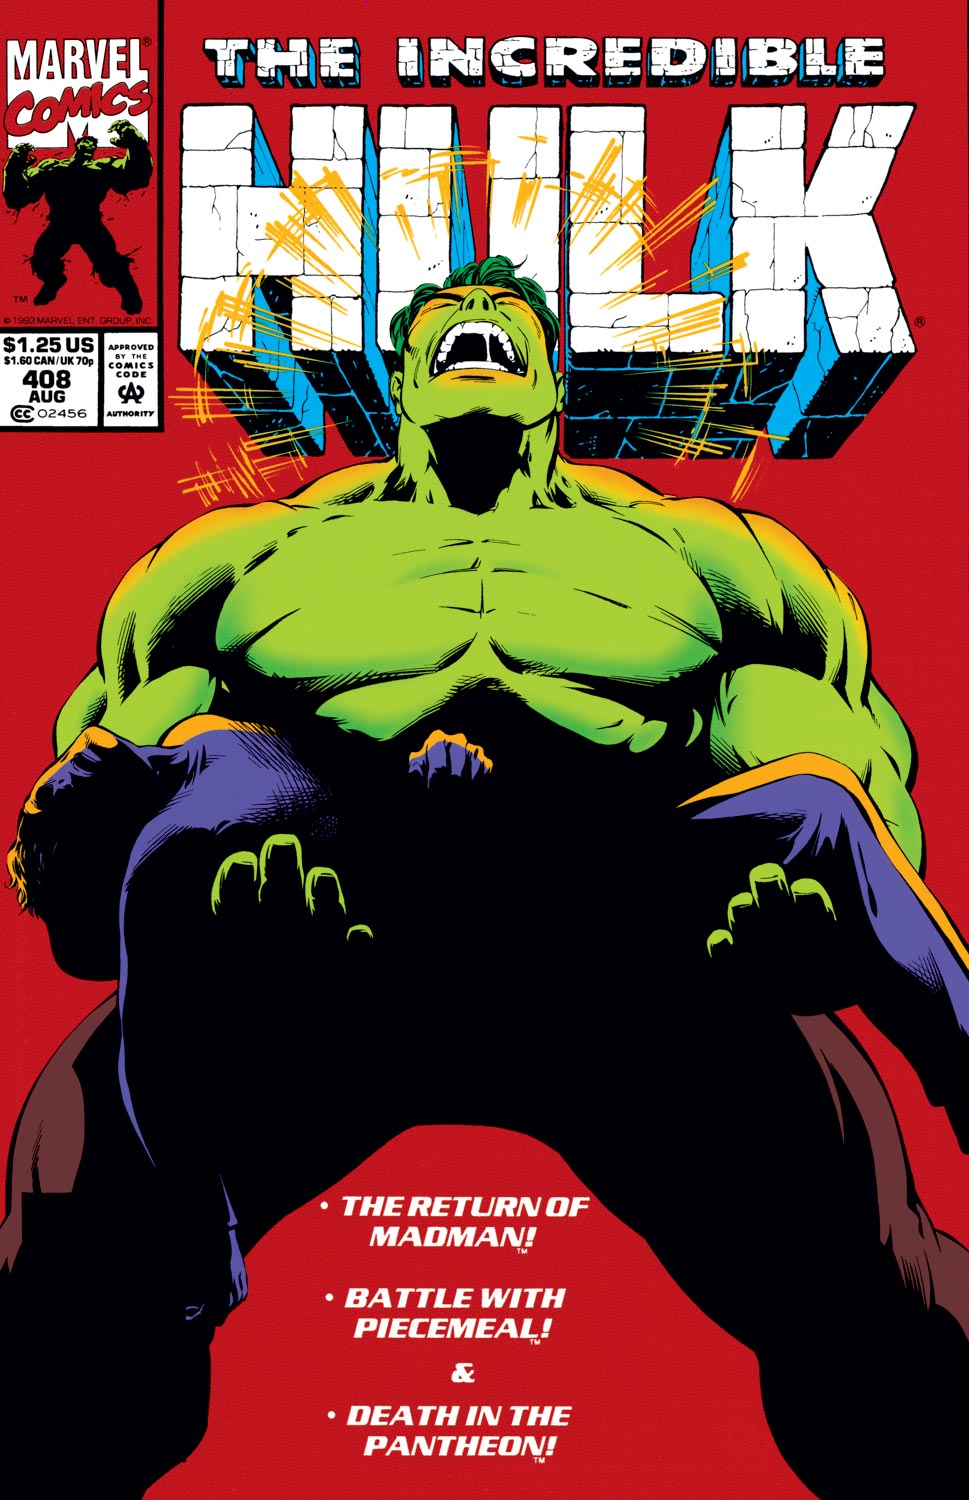 Incredible Hulk (1962) #408